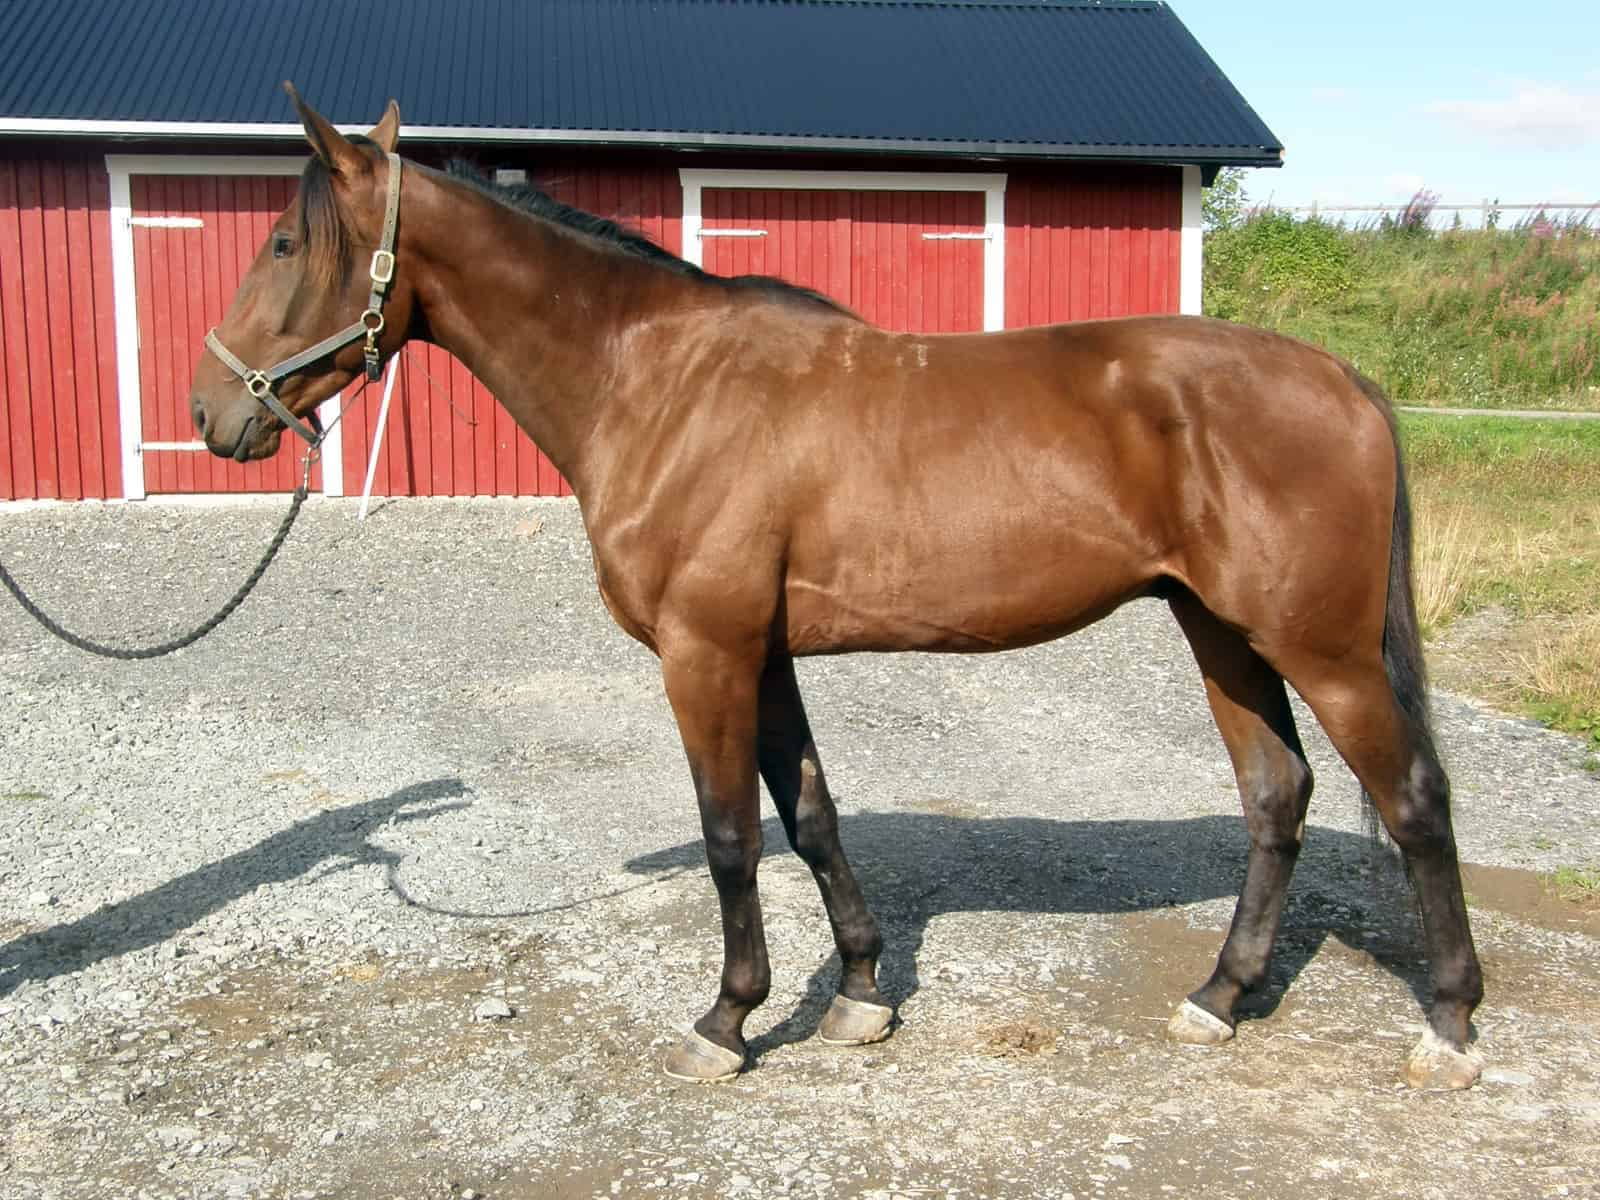 Standardbred Racehorses – The Horse